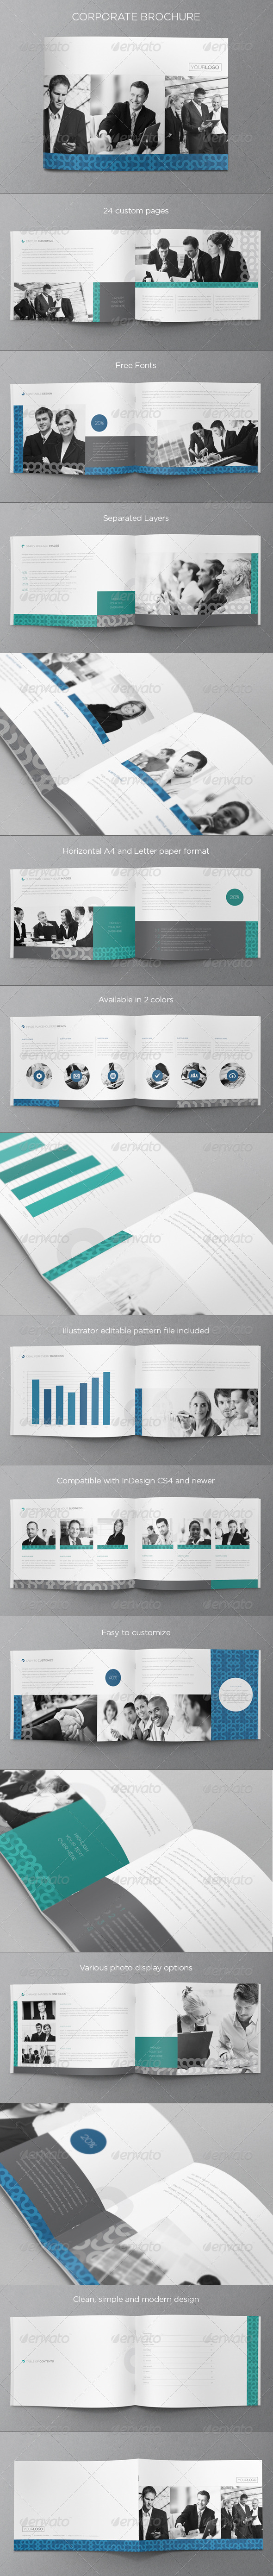 GraphicRiver Corporate Business Brochure 2 5345252